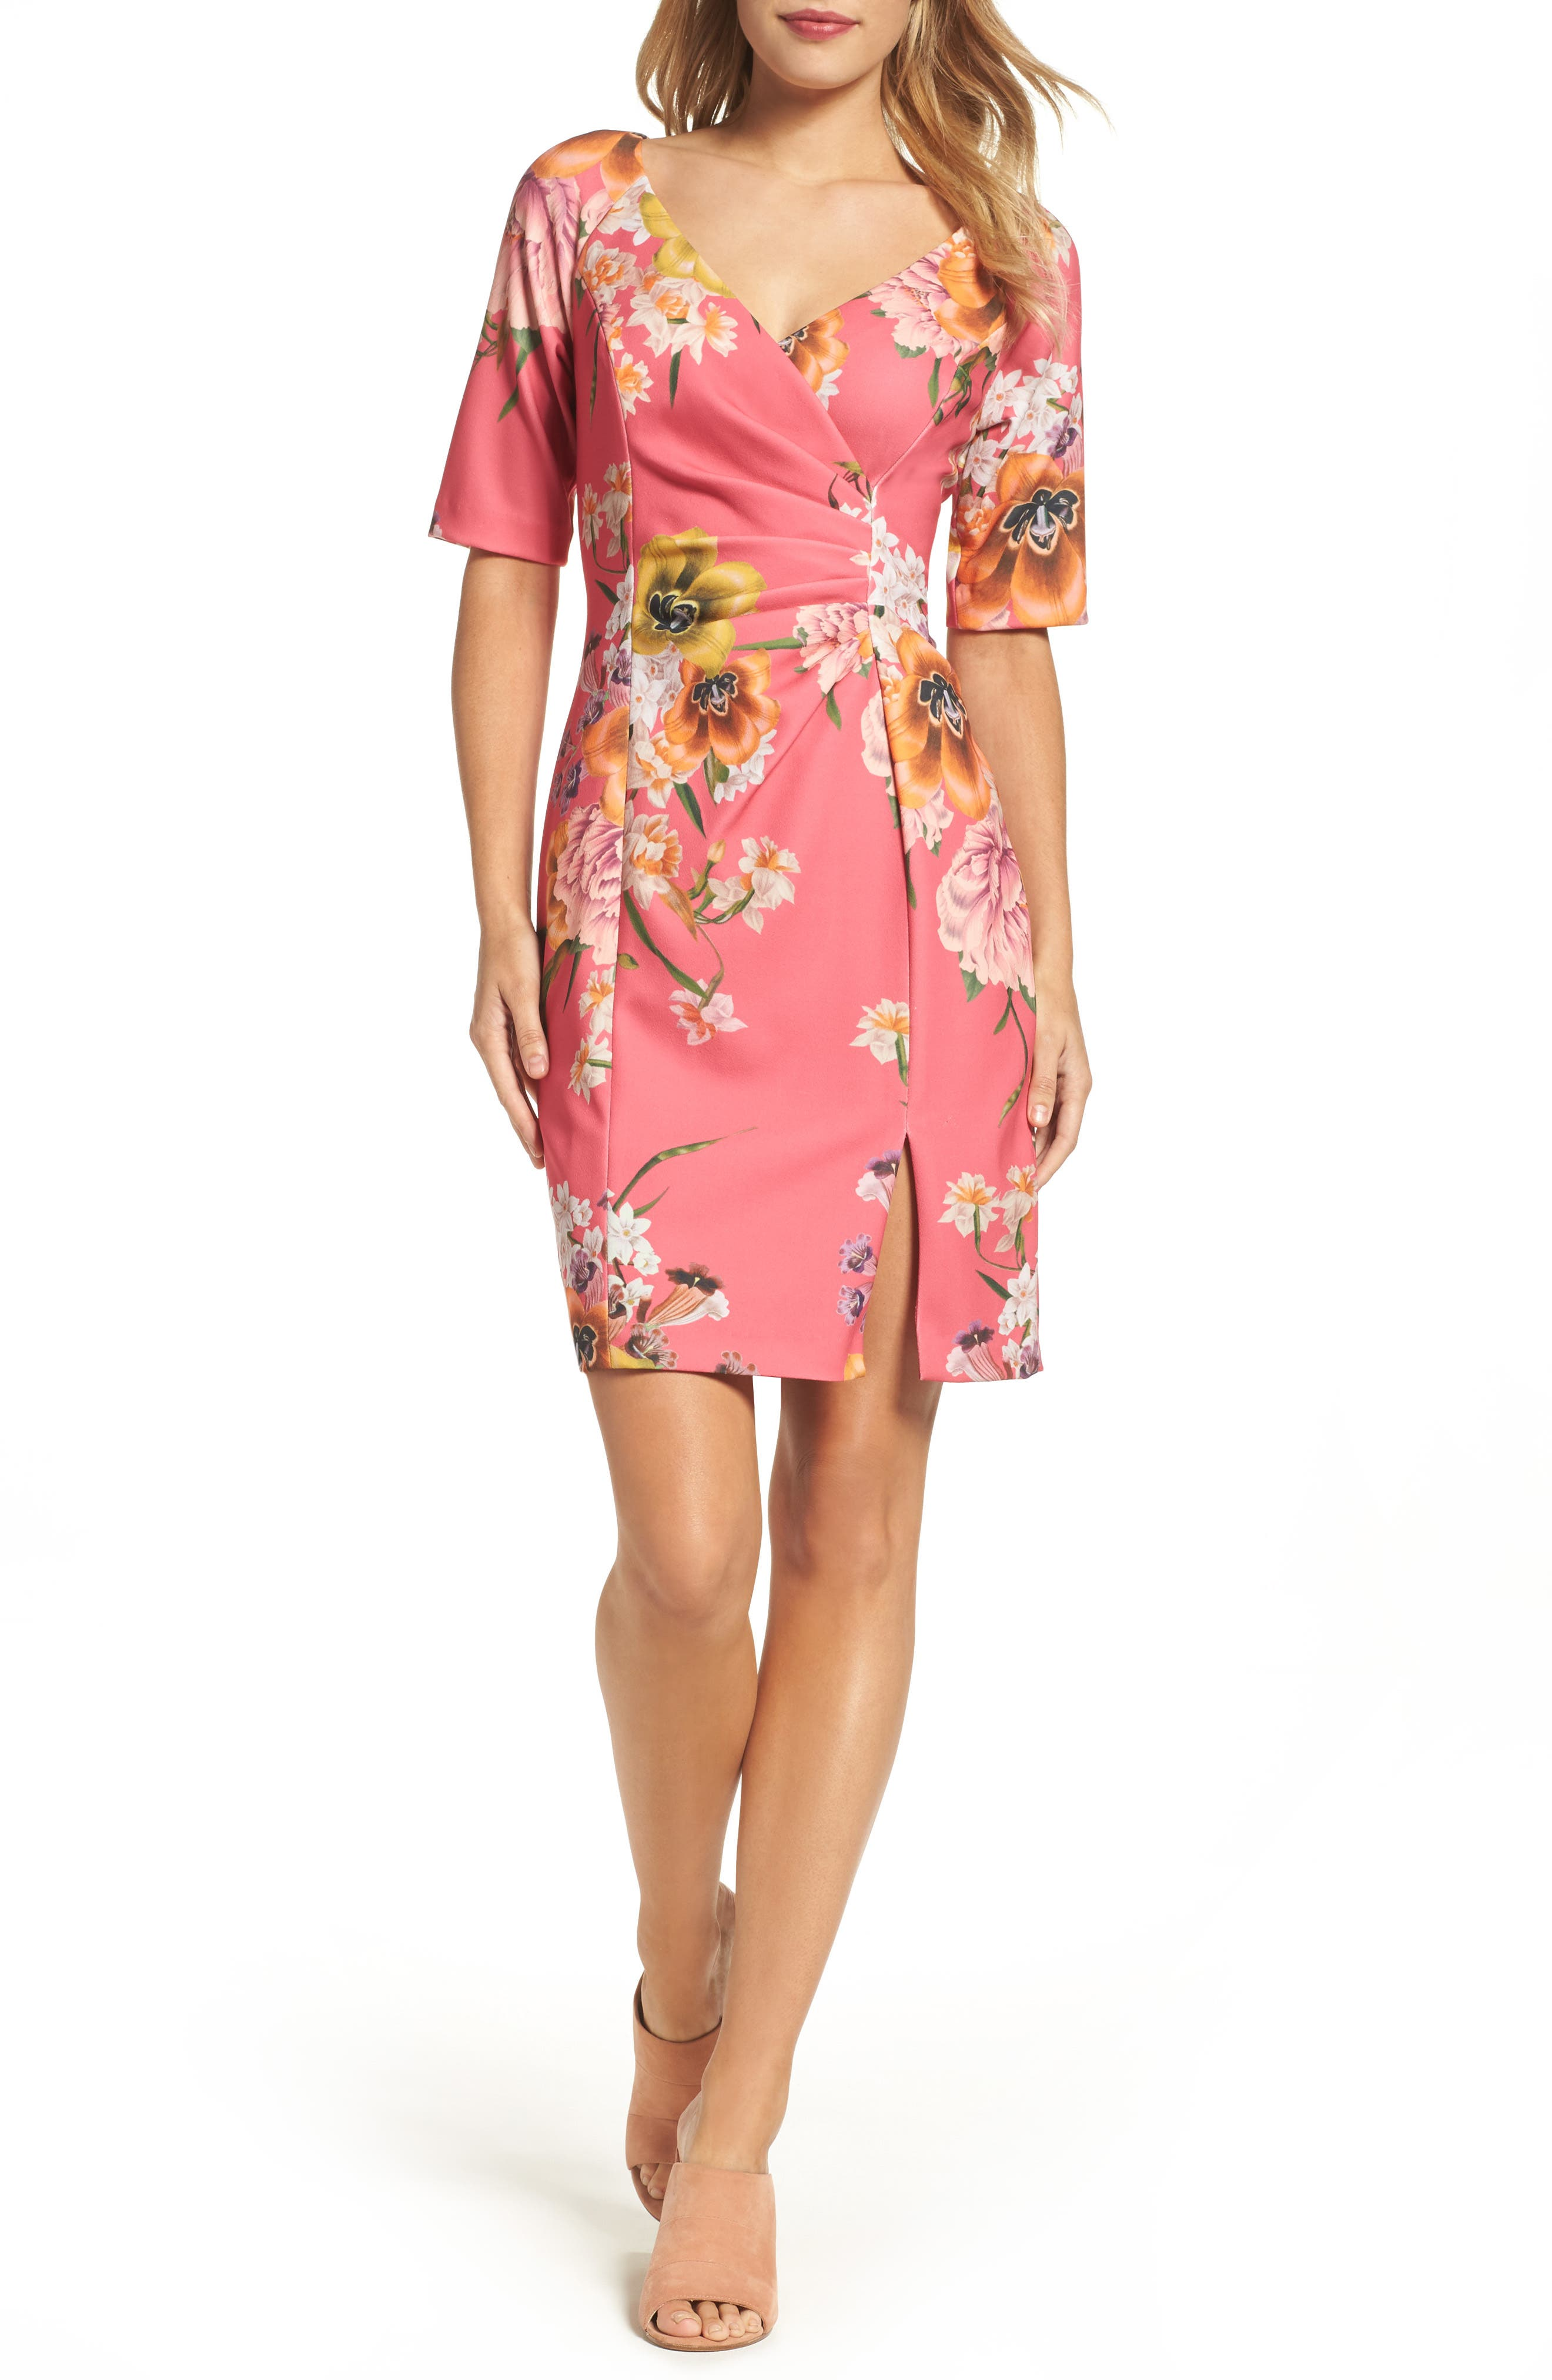 Adrianna Papell Beckoning Bouquets Sheath Dress